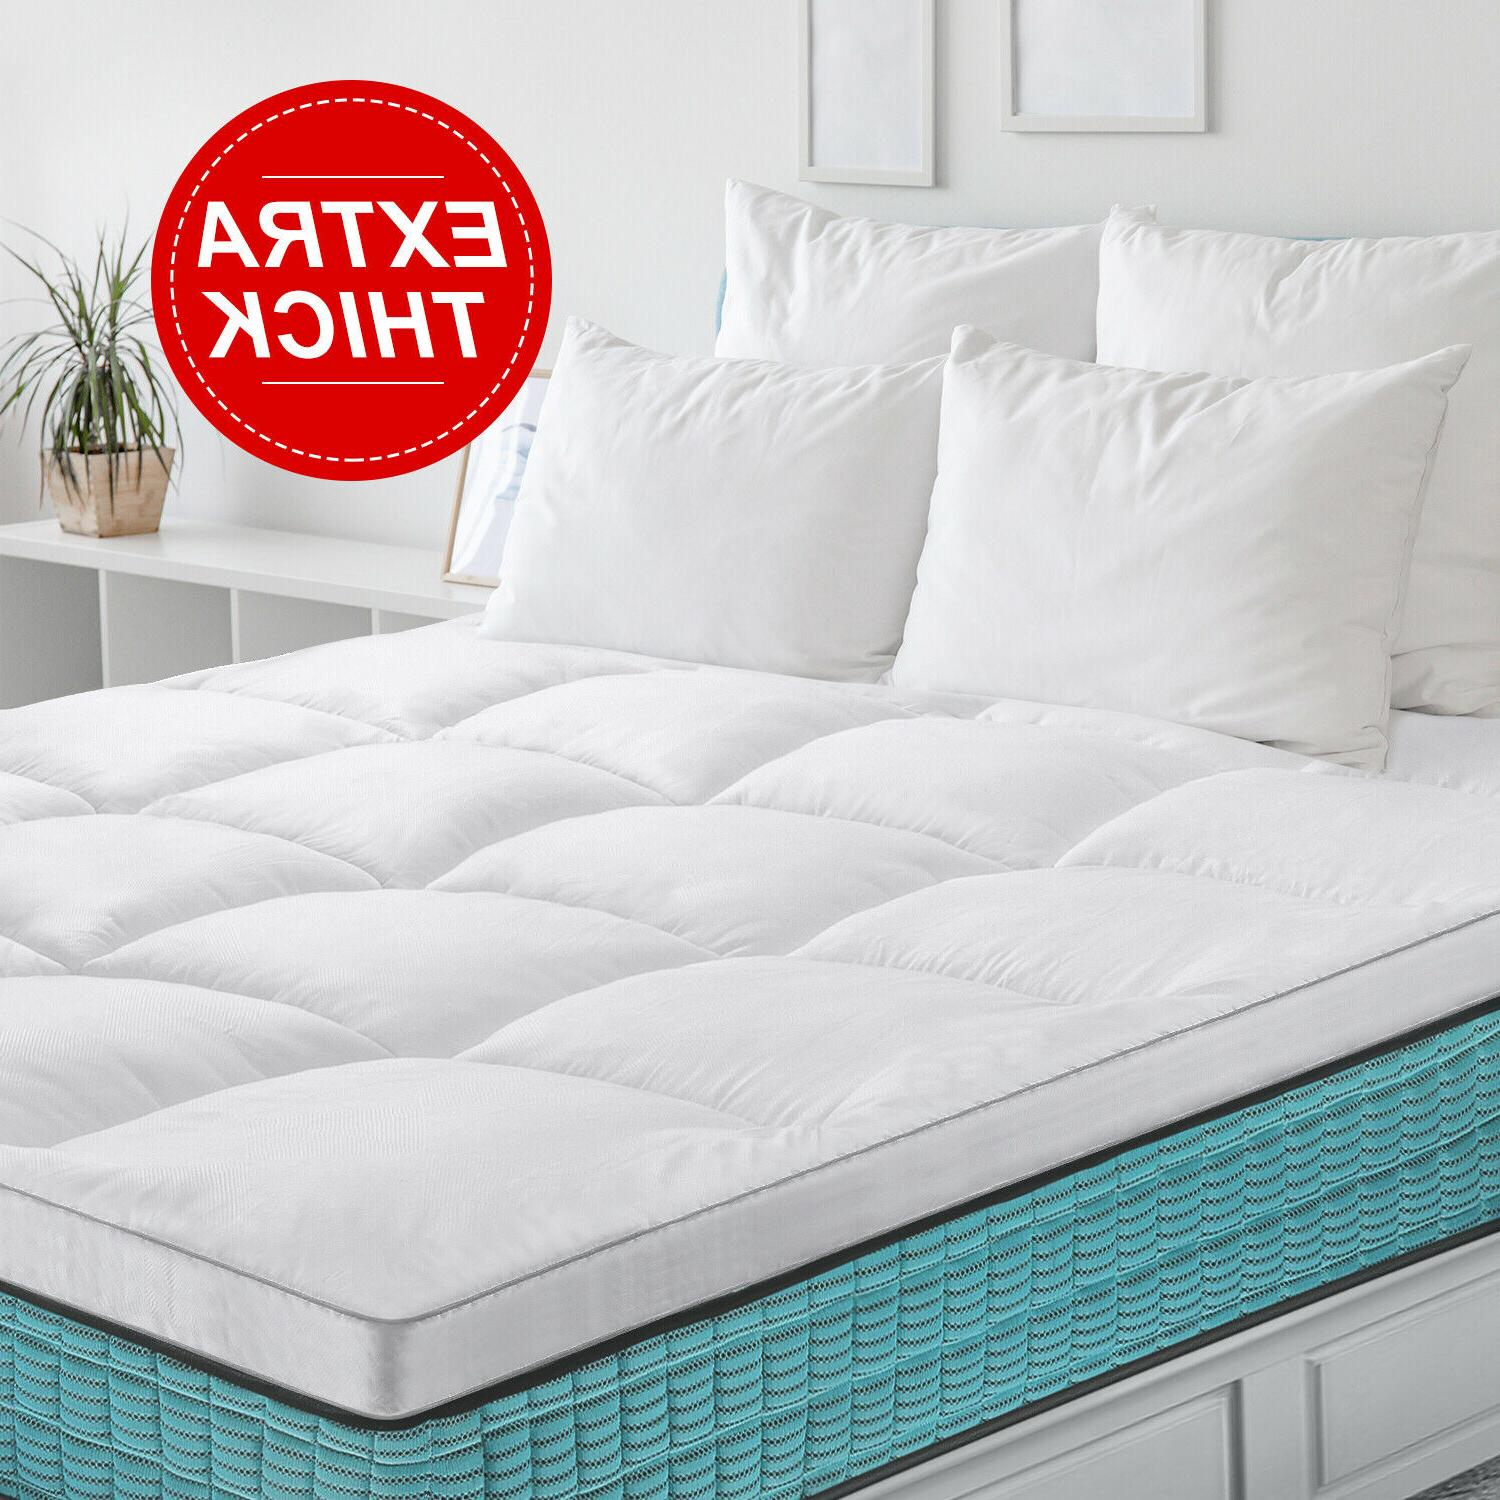 2 mattress topper hypoallergenic down pad cover